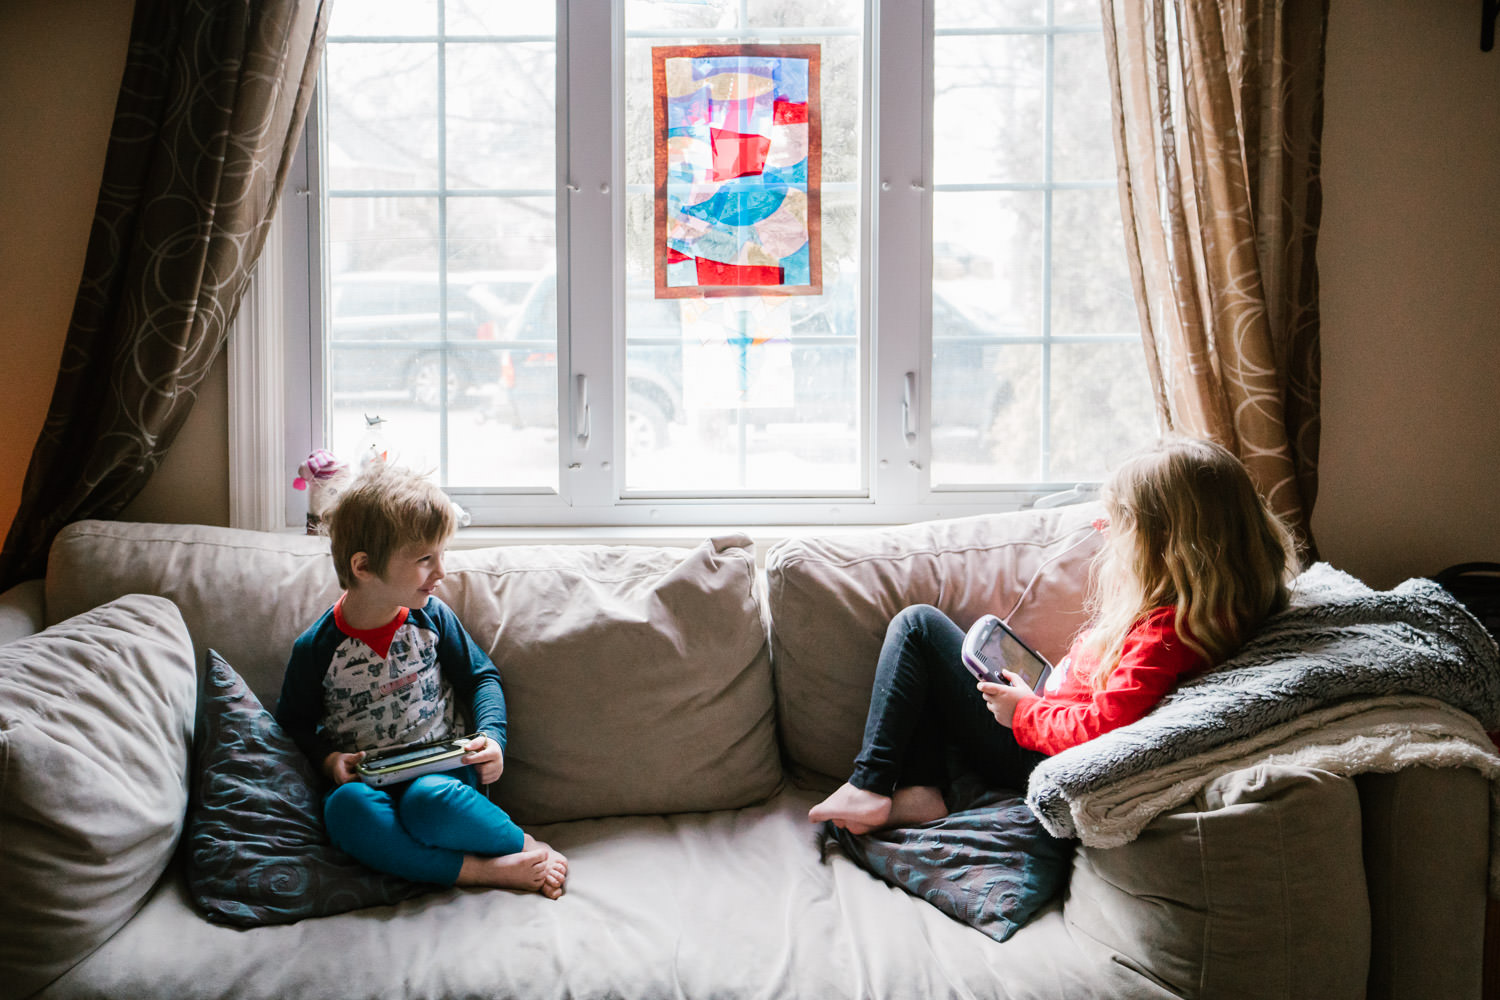 Two children sit on their couch in front of their living room window.